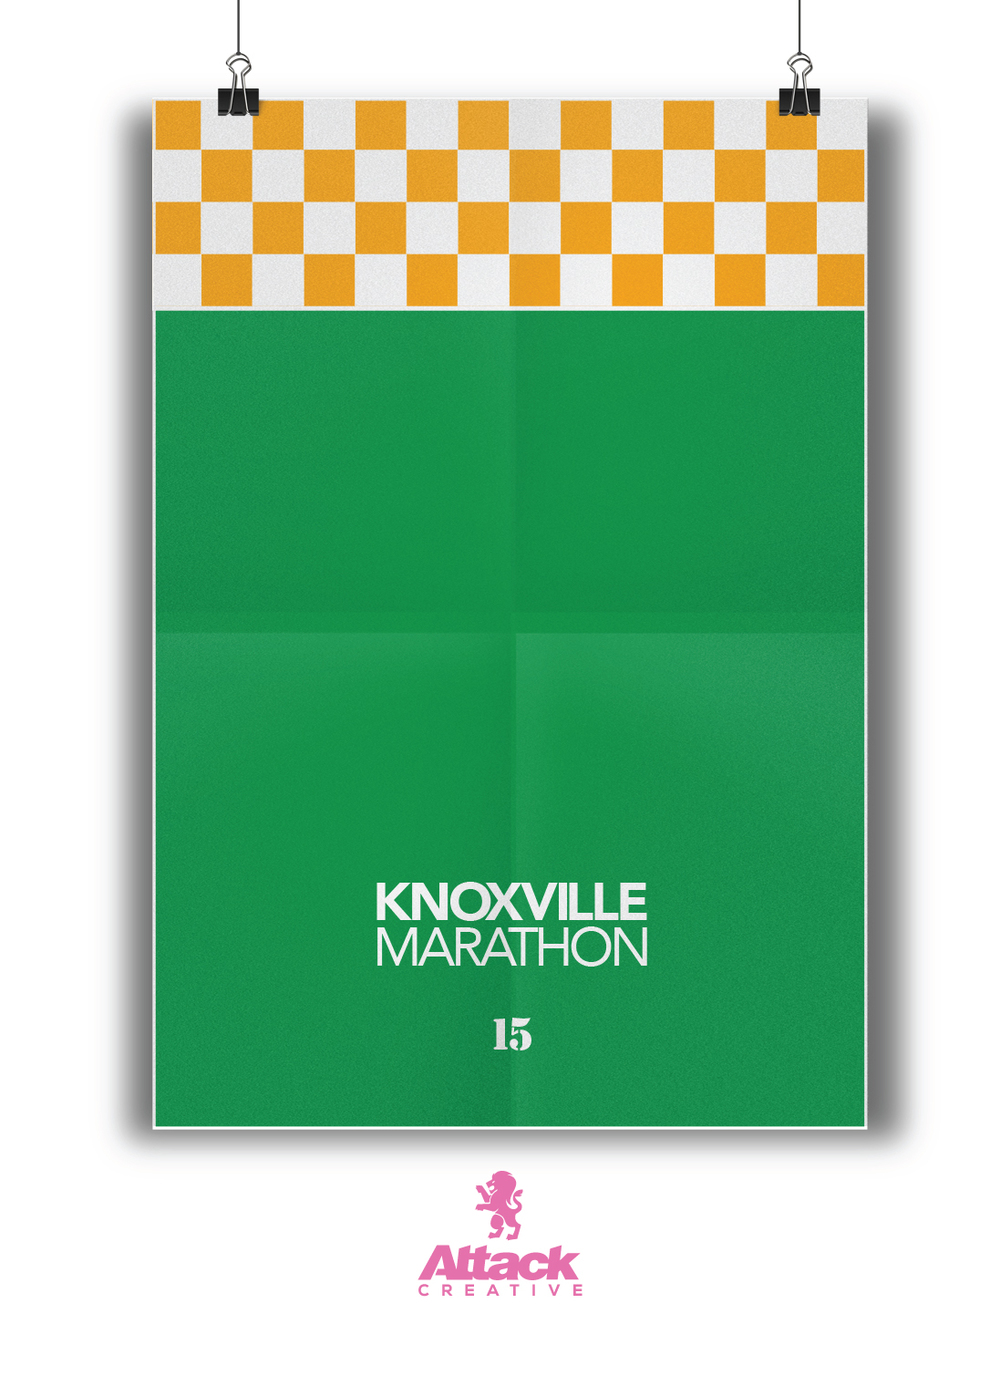 Knoxville-Marathon-Poster-mockup copy.jpg